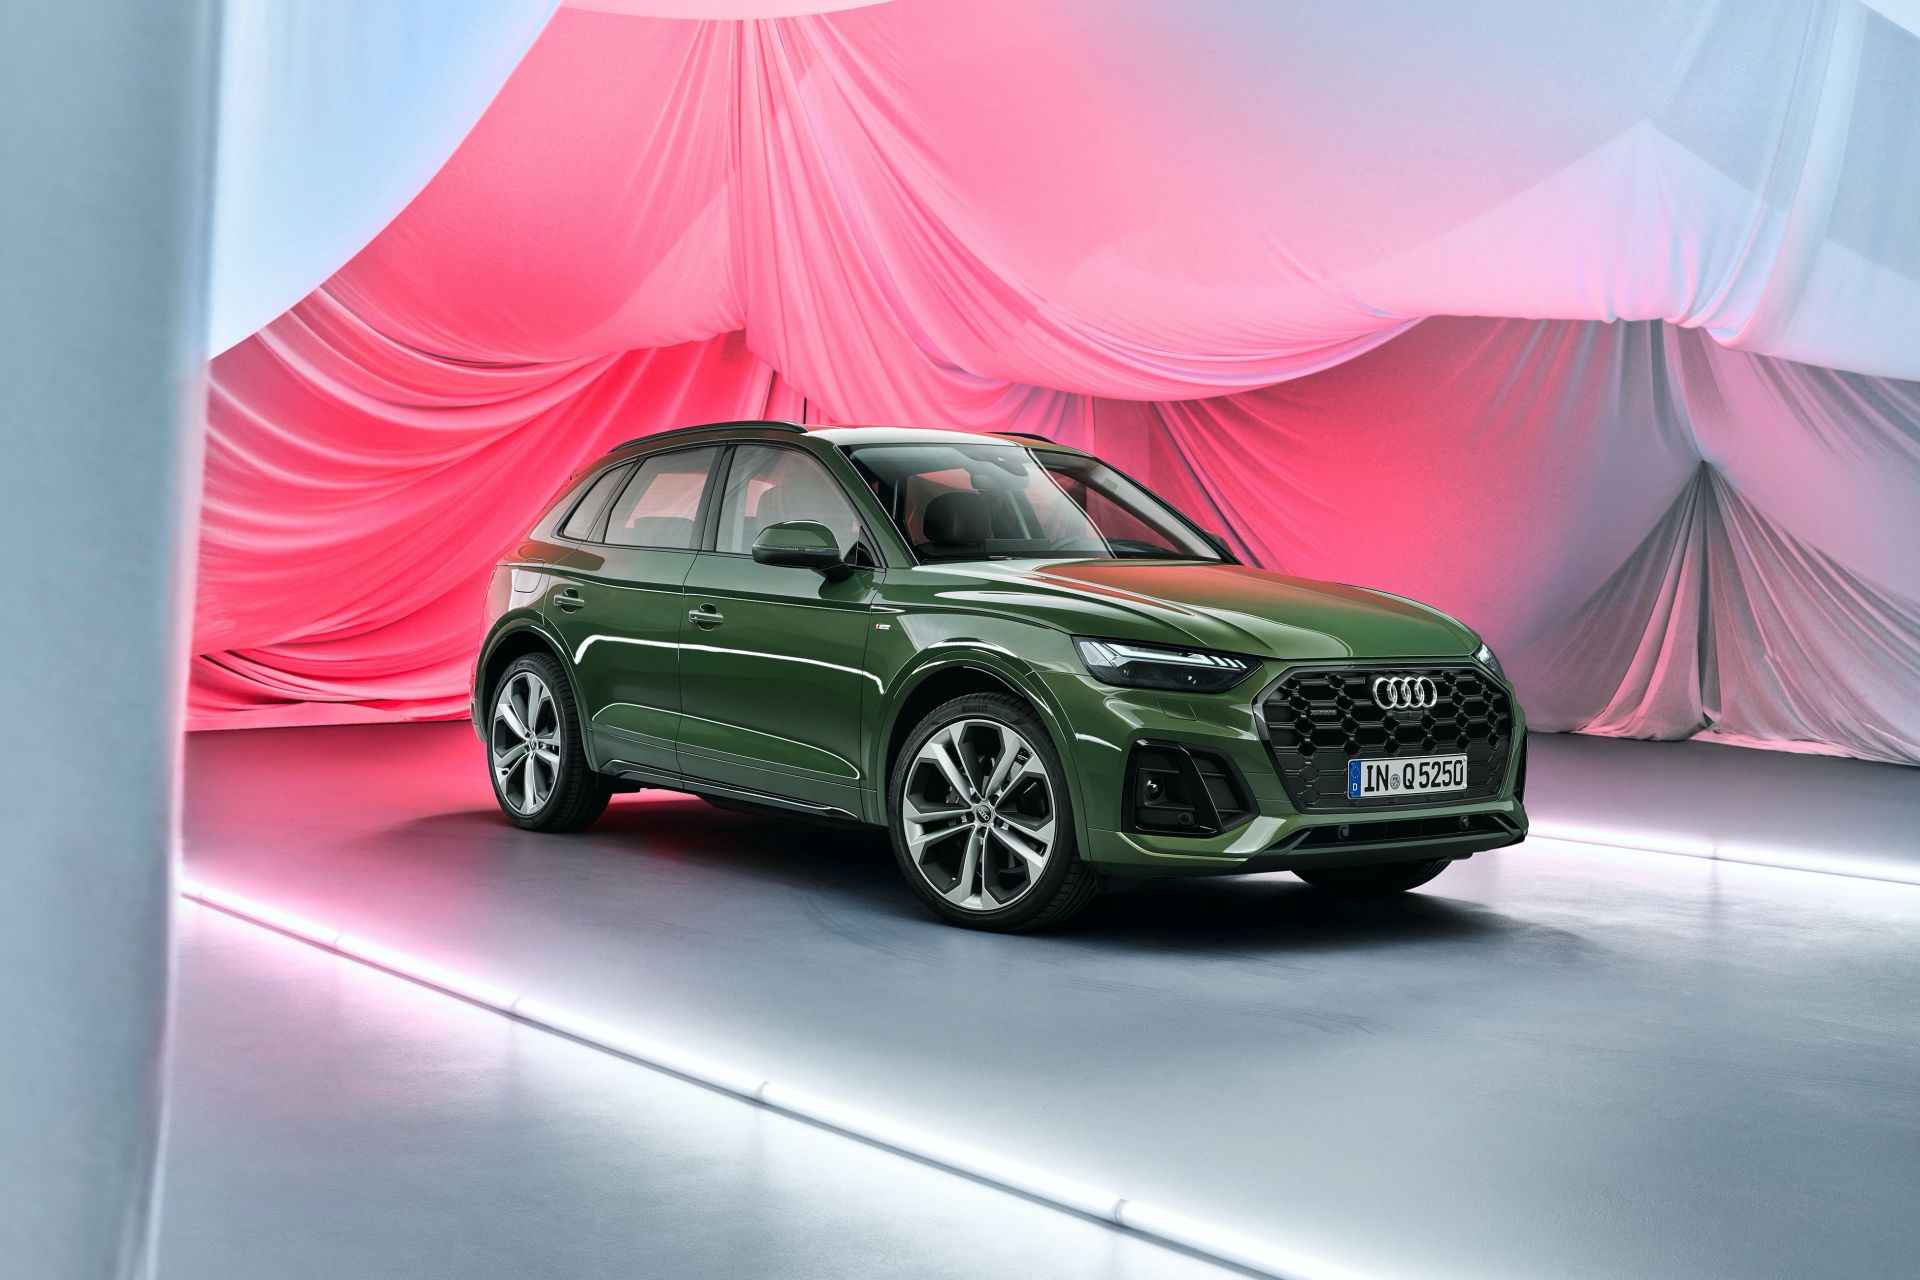 2021 audi q5 debuts with fresh design and 12v mildhybrid